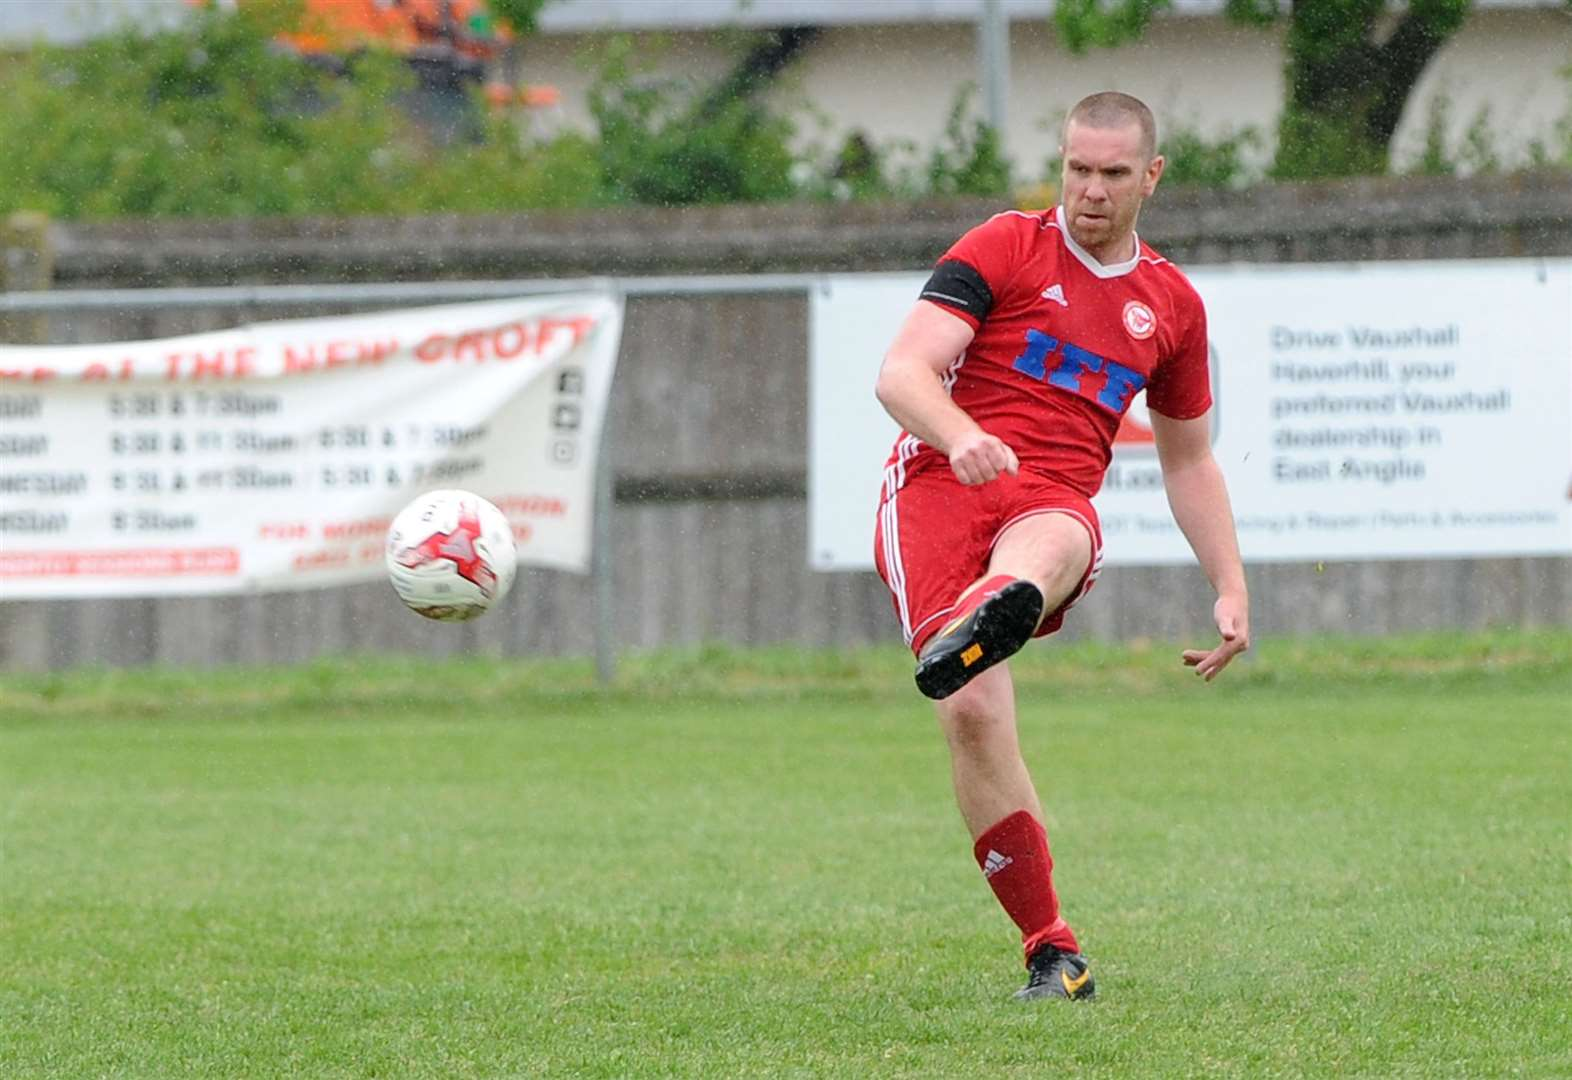 THURLOW NUNN: Haverhill Rovers announce four signings